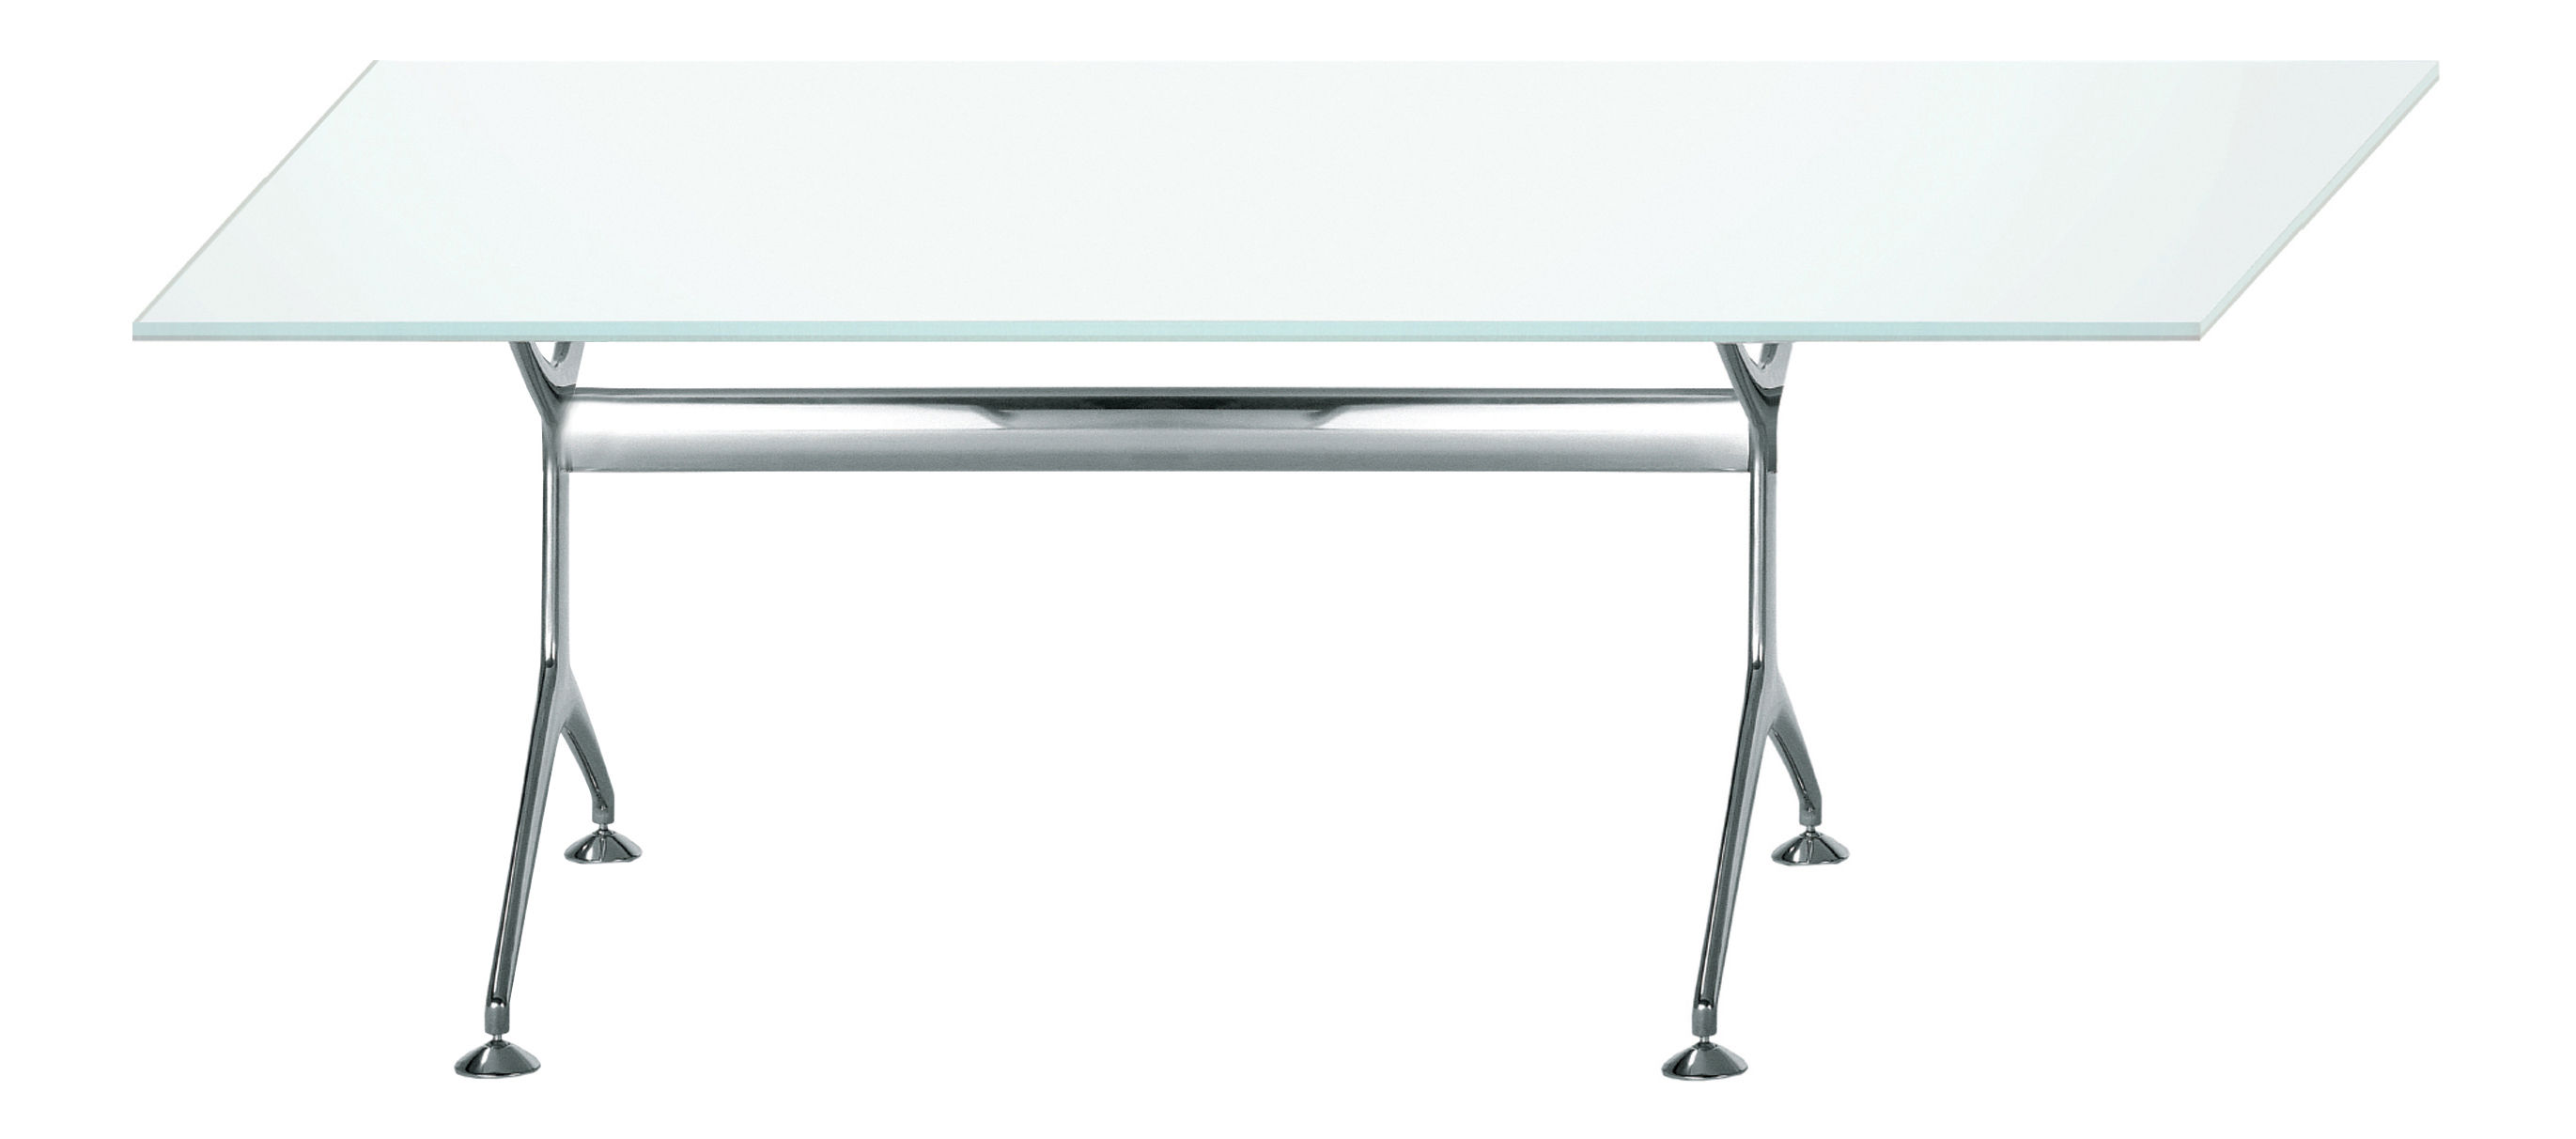 Furniture - Office Furniture - Frametable Table - 190 x 85 cm by Alias - Polished aluminium structure / extra clear glass top - Glass, Polished aluminium